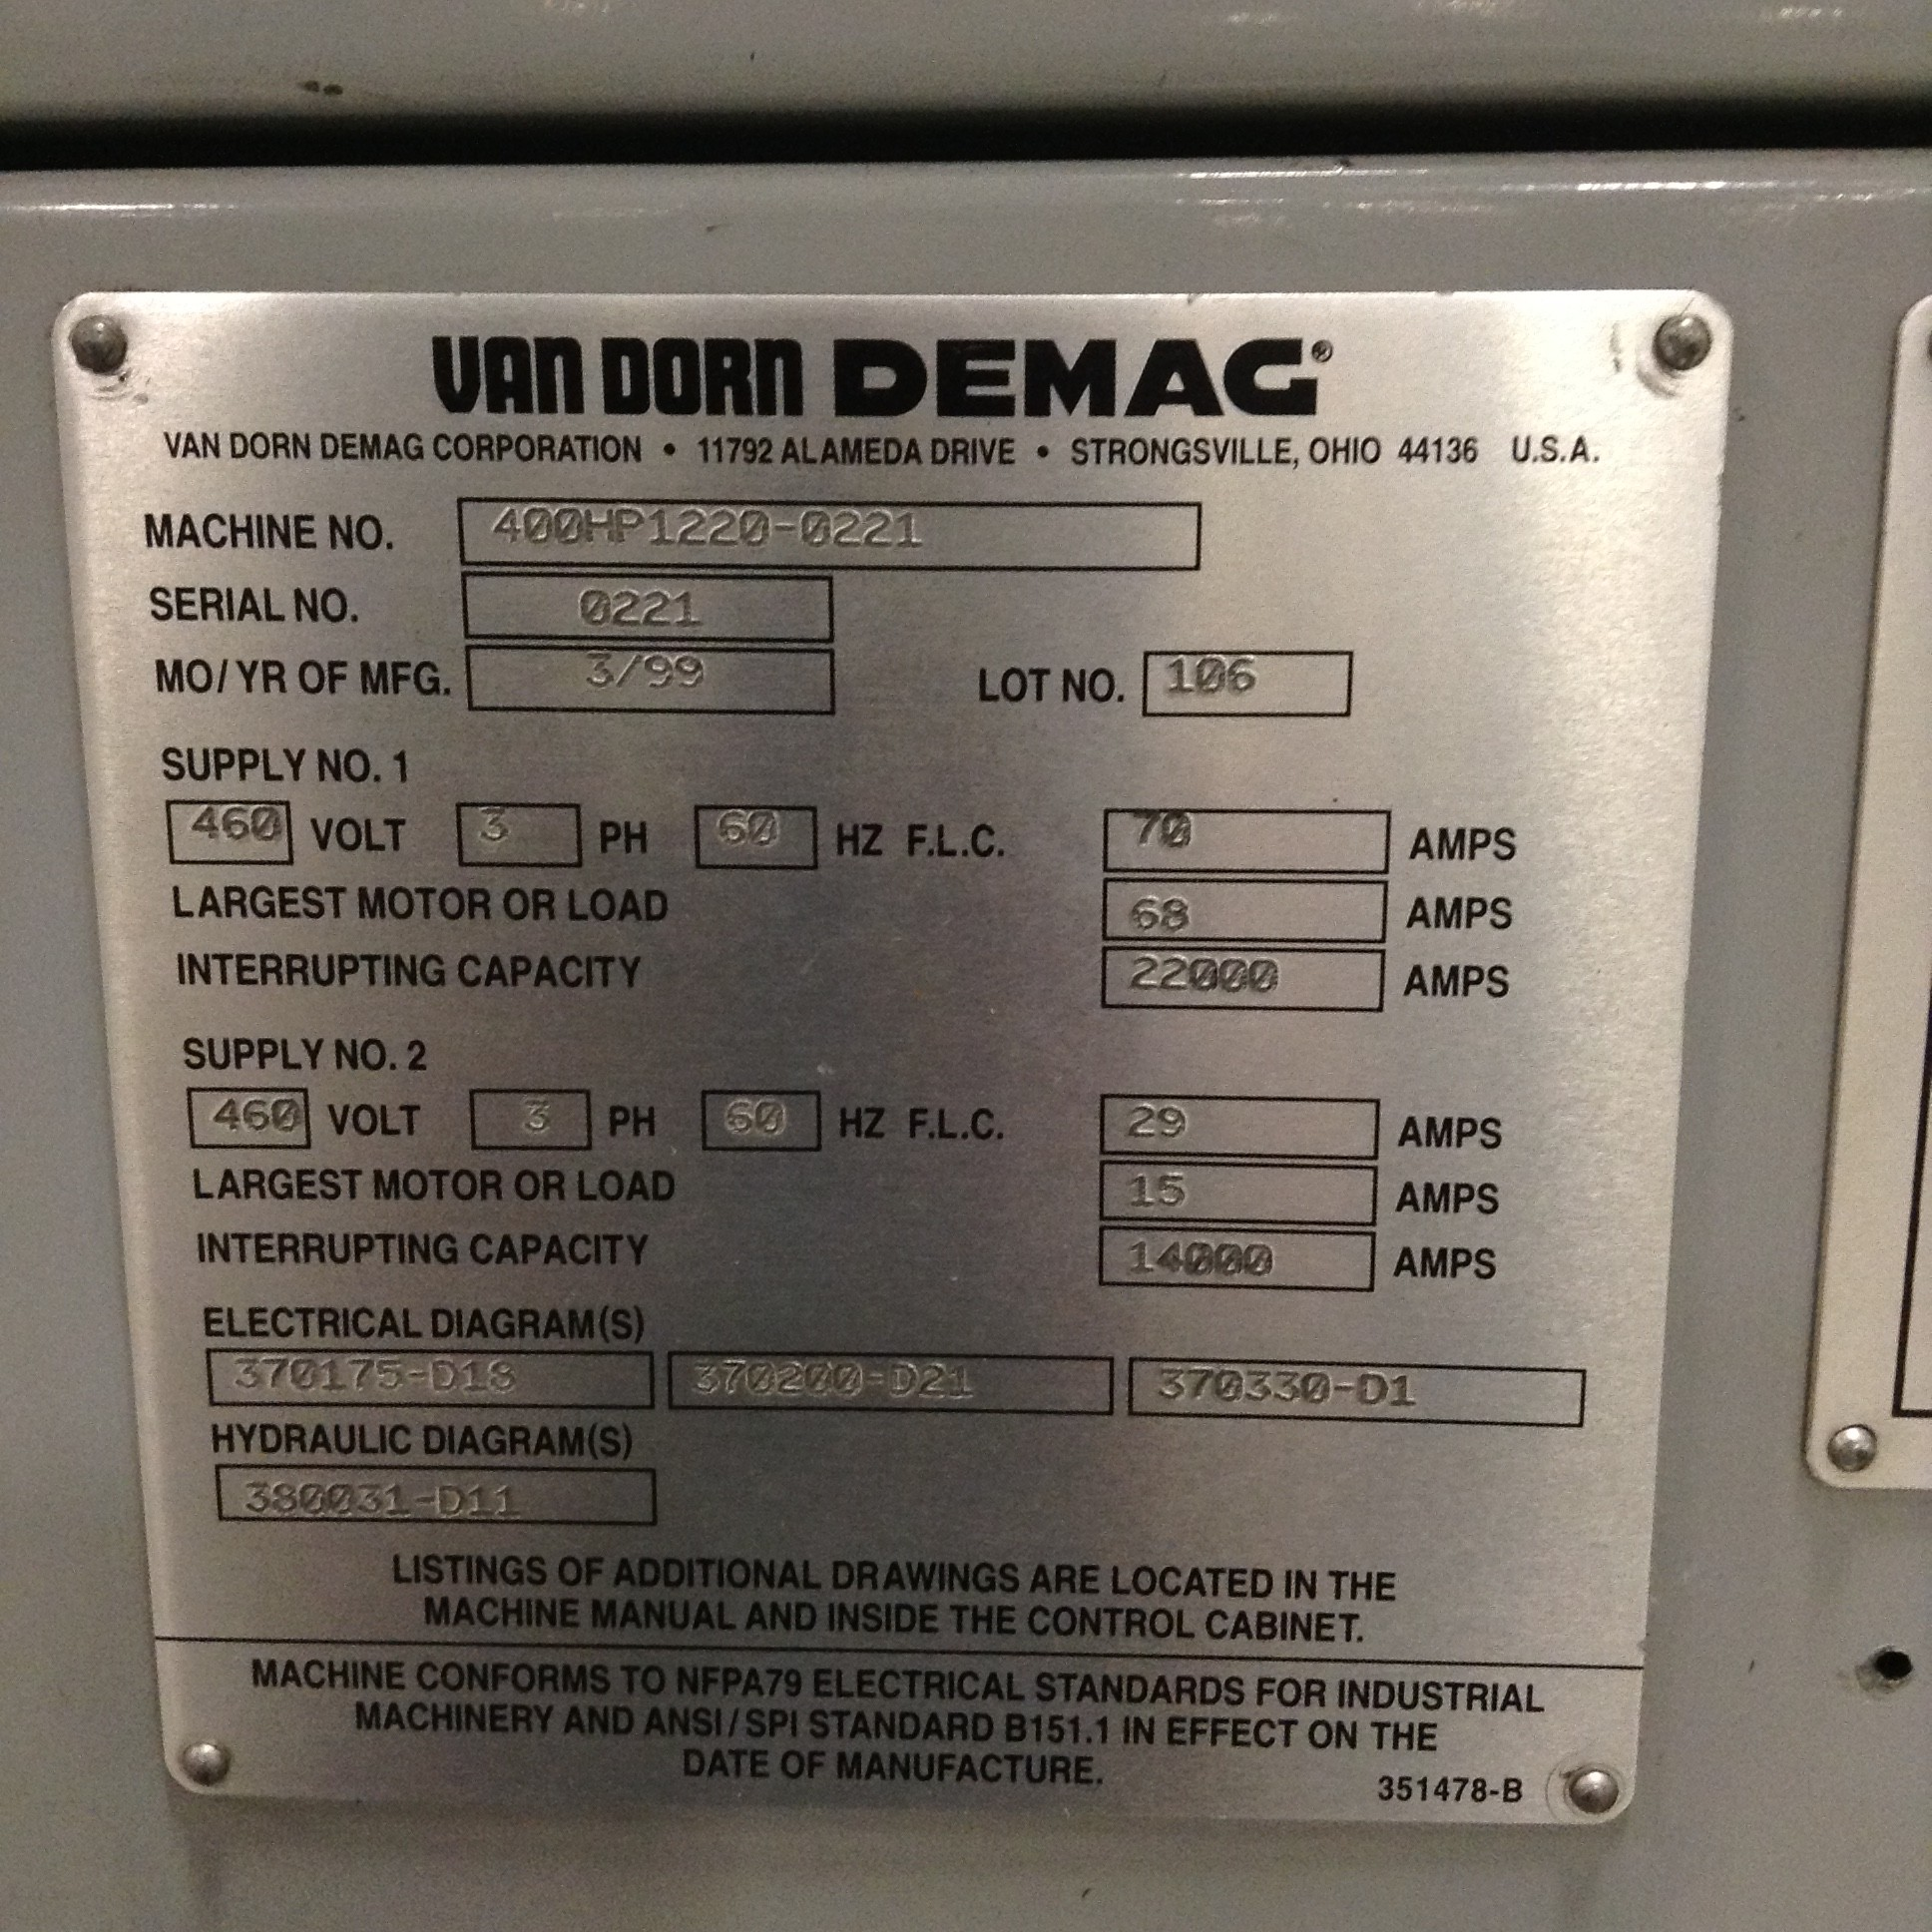 Van Dorn Wiring Diagram Detailed Schematics Yale Erc040 Diagrams Demag 400 Ton Injection Molding Machine 400hp1220 Used Major General Earl